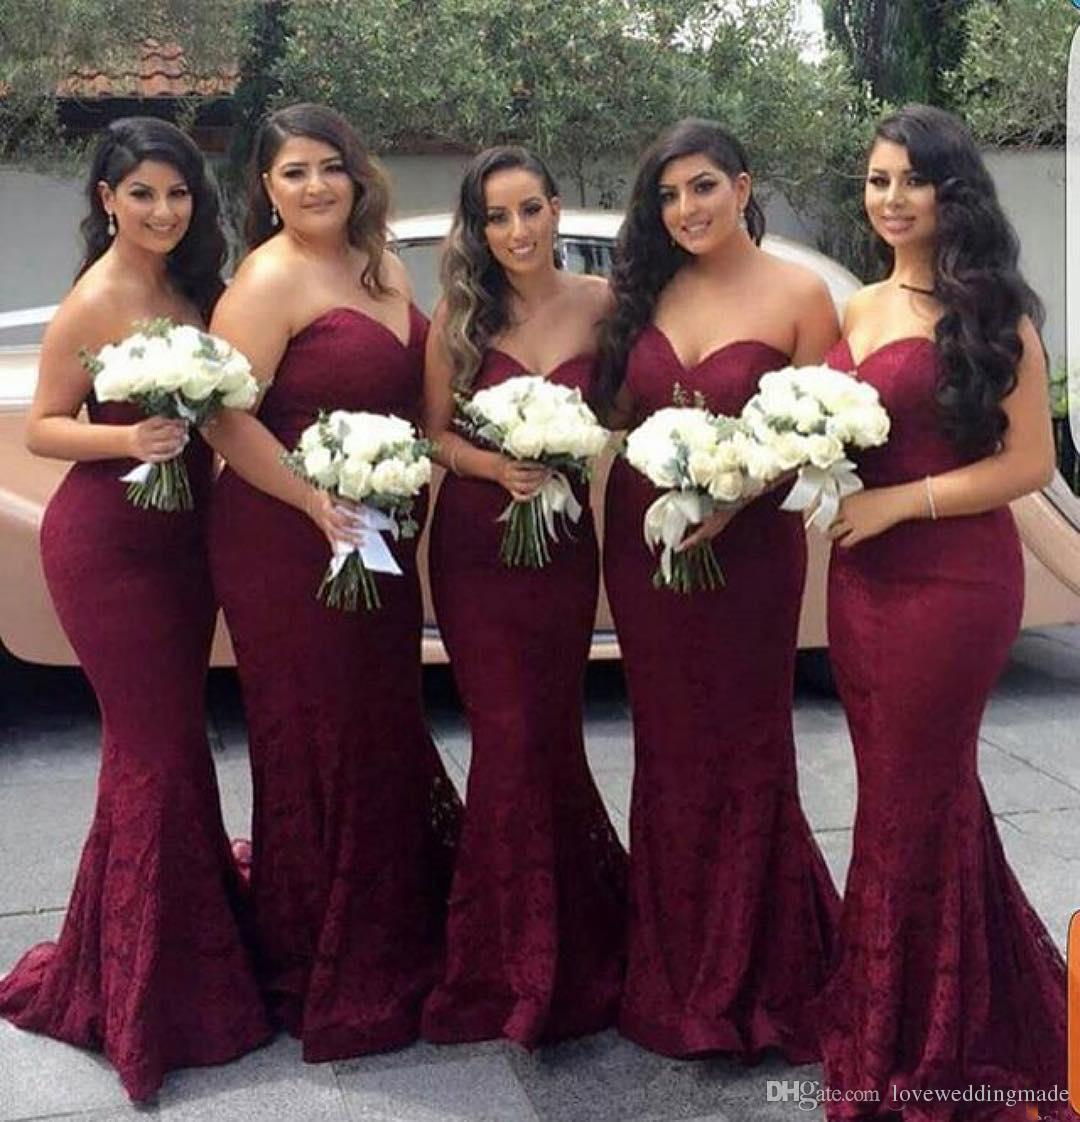 Burgundy Mermaid Wedding Guest Dresses 2017 Sweetheart Sleeveless Floor Length Custom Made Bridesmaid Gowns Long Bridal Party Wear